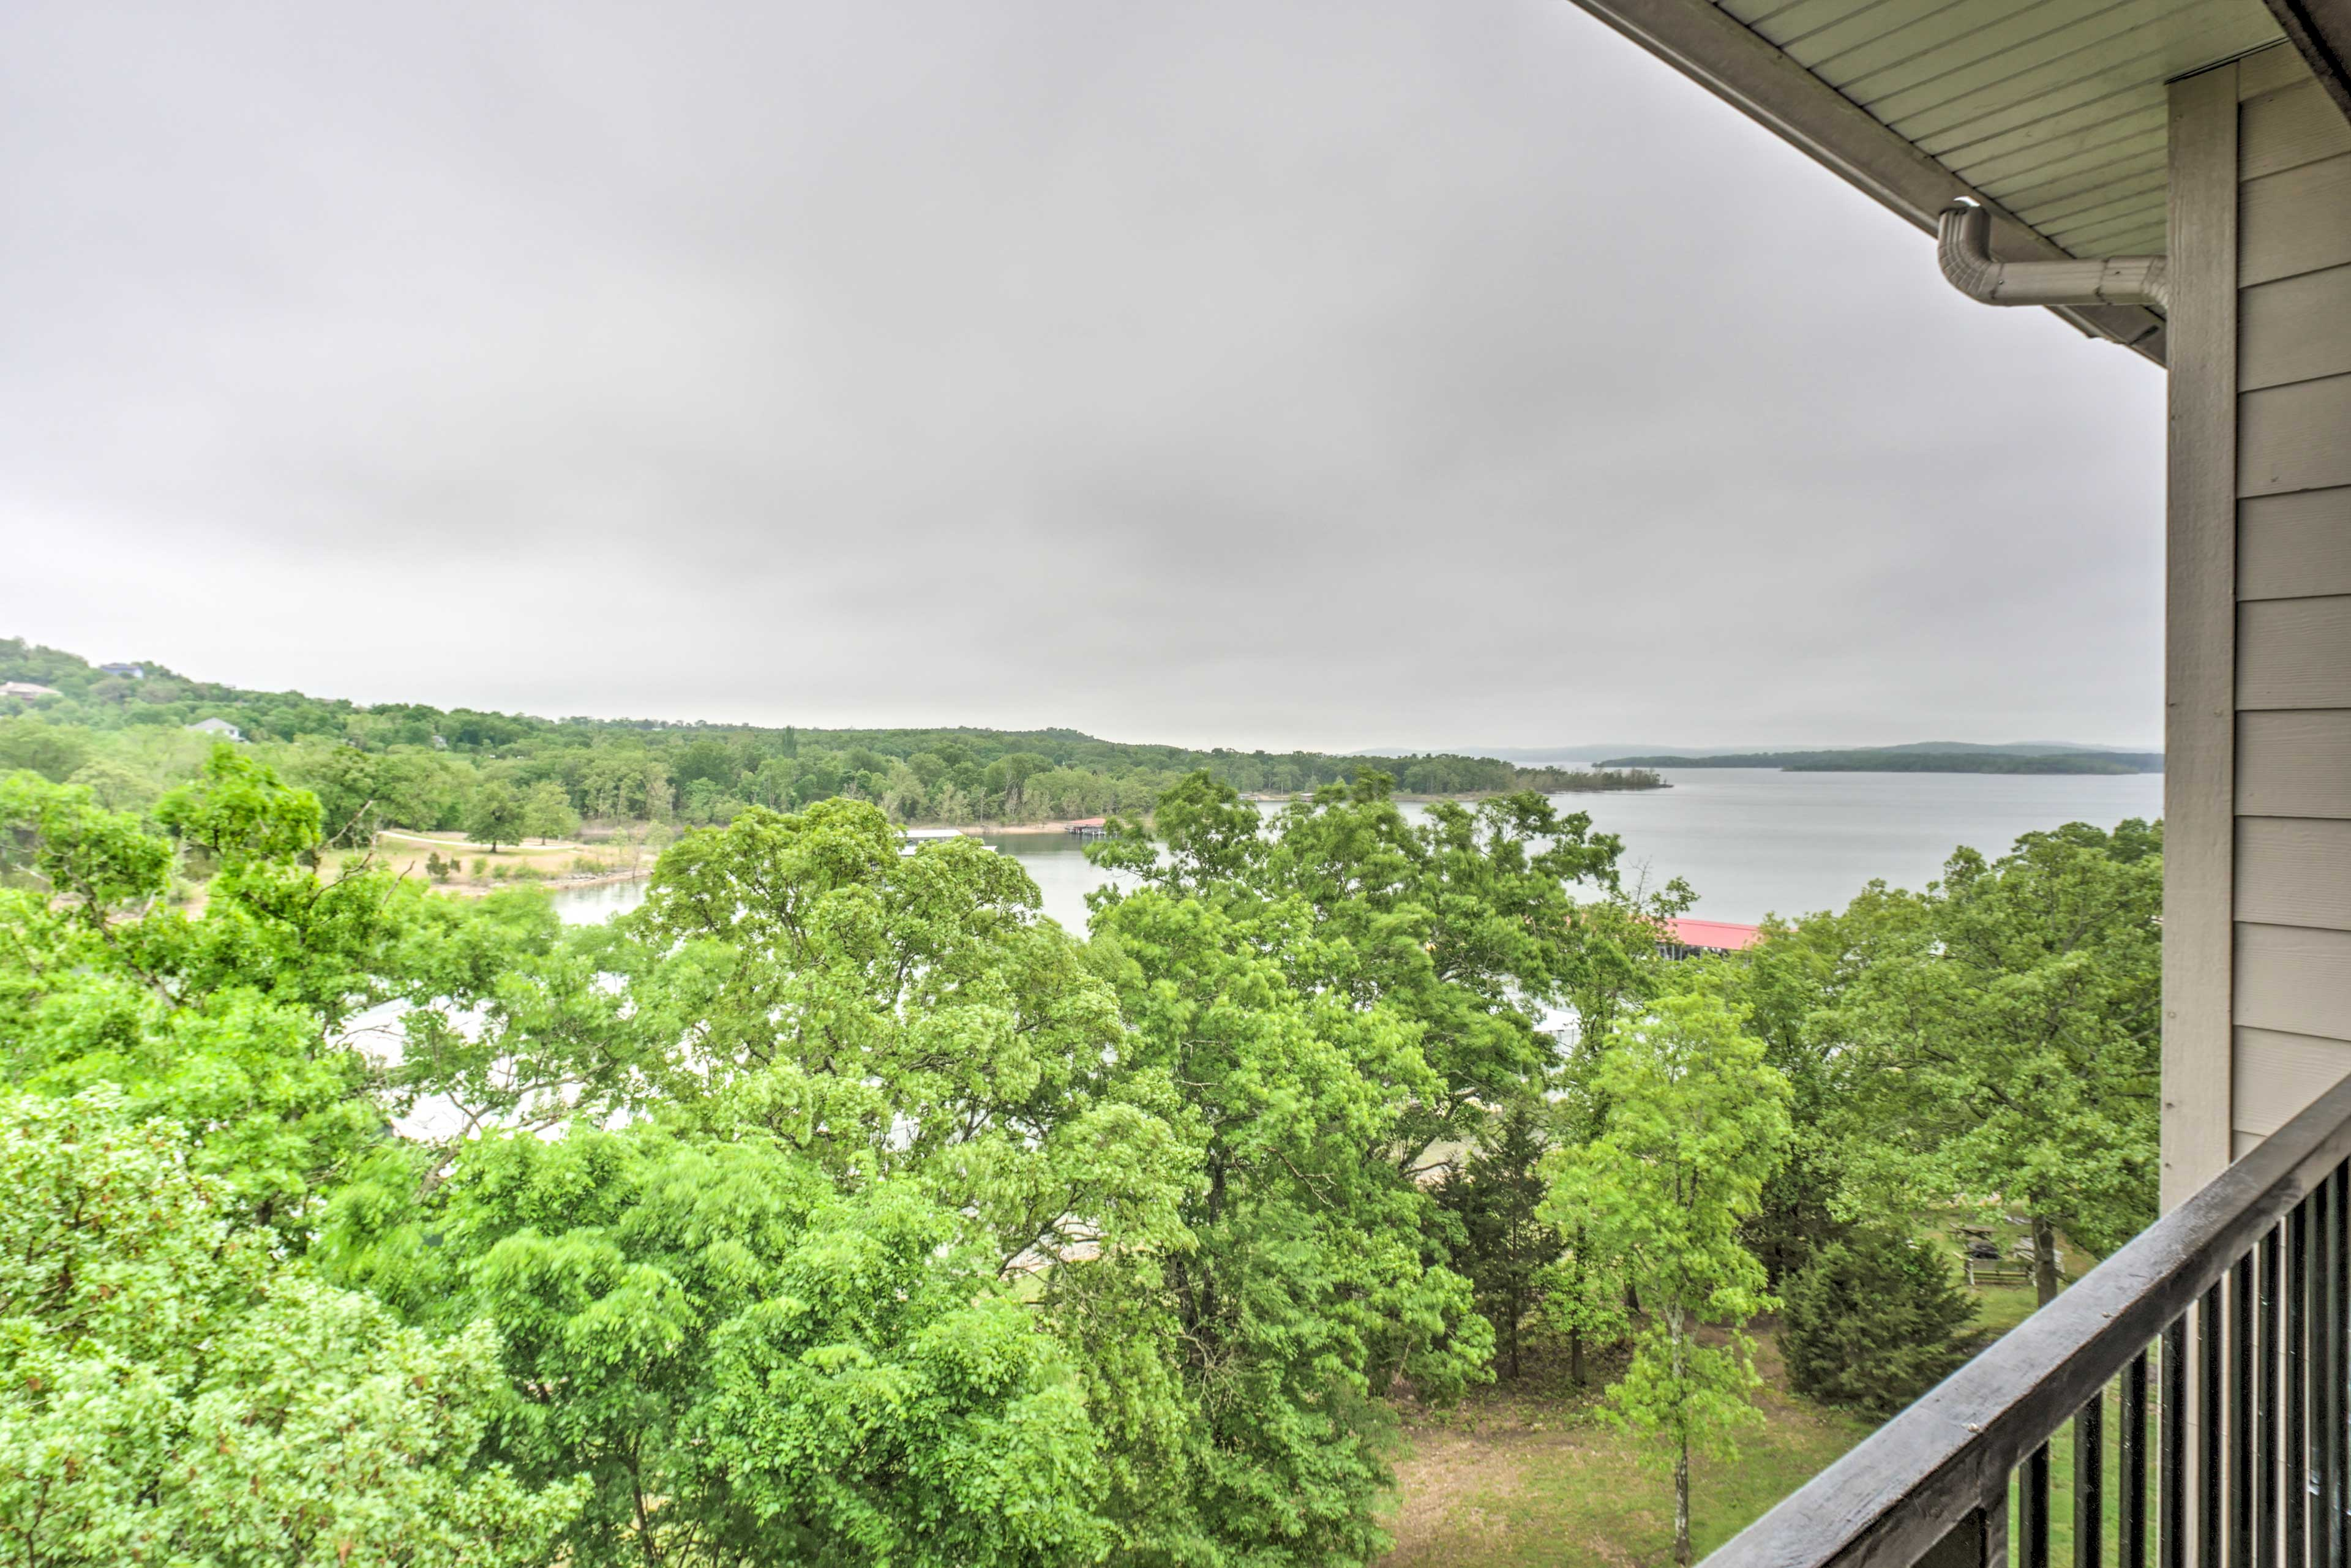 This condo has unbeatable views of the river.